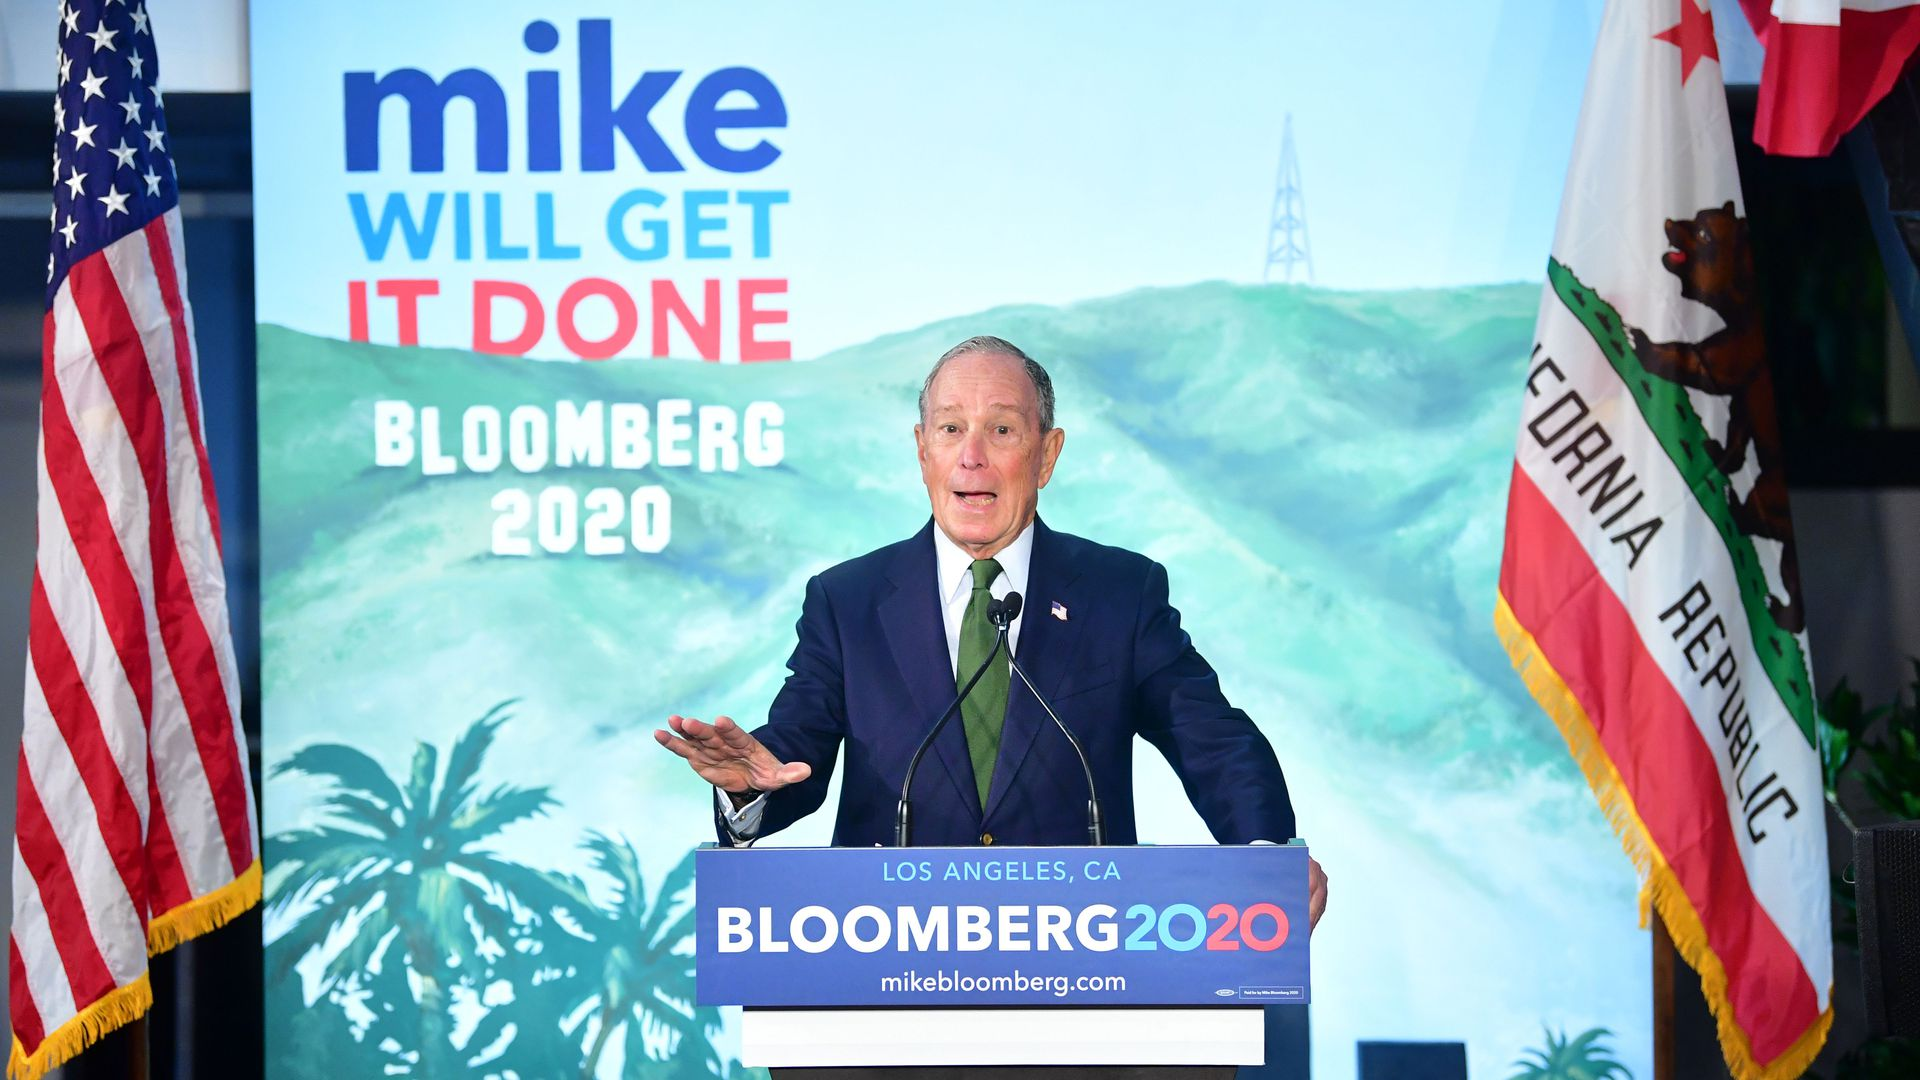 Mike Bloomberg will pay his campaign staff to support whoever becomes Democratic nominee